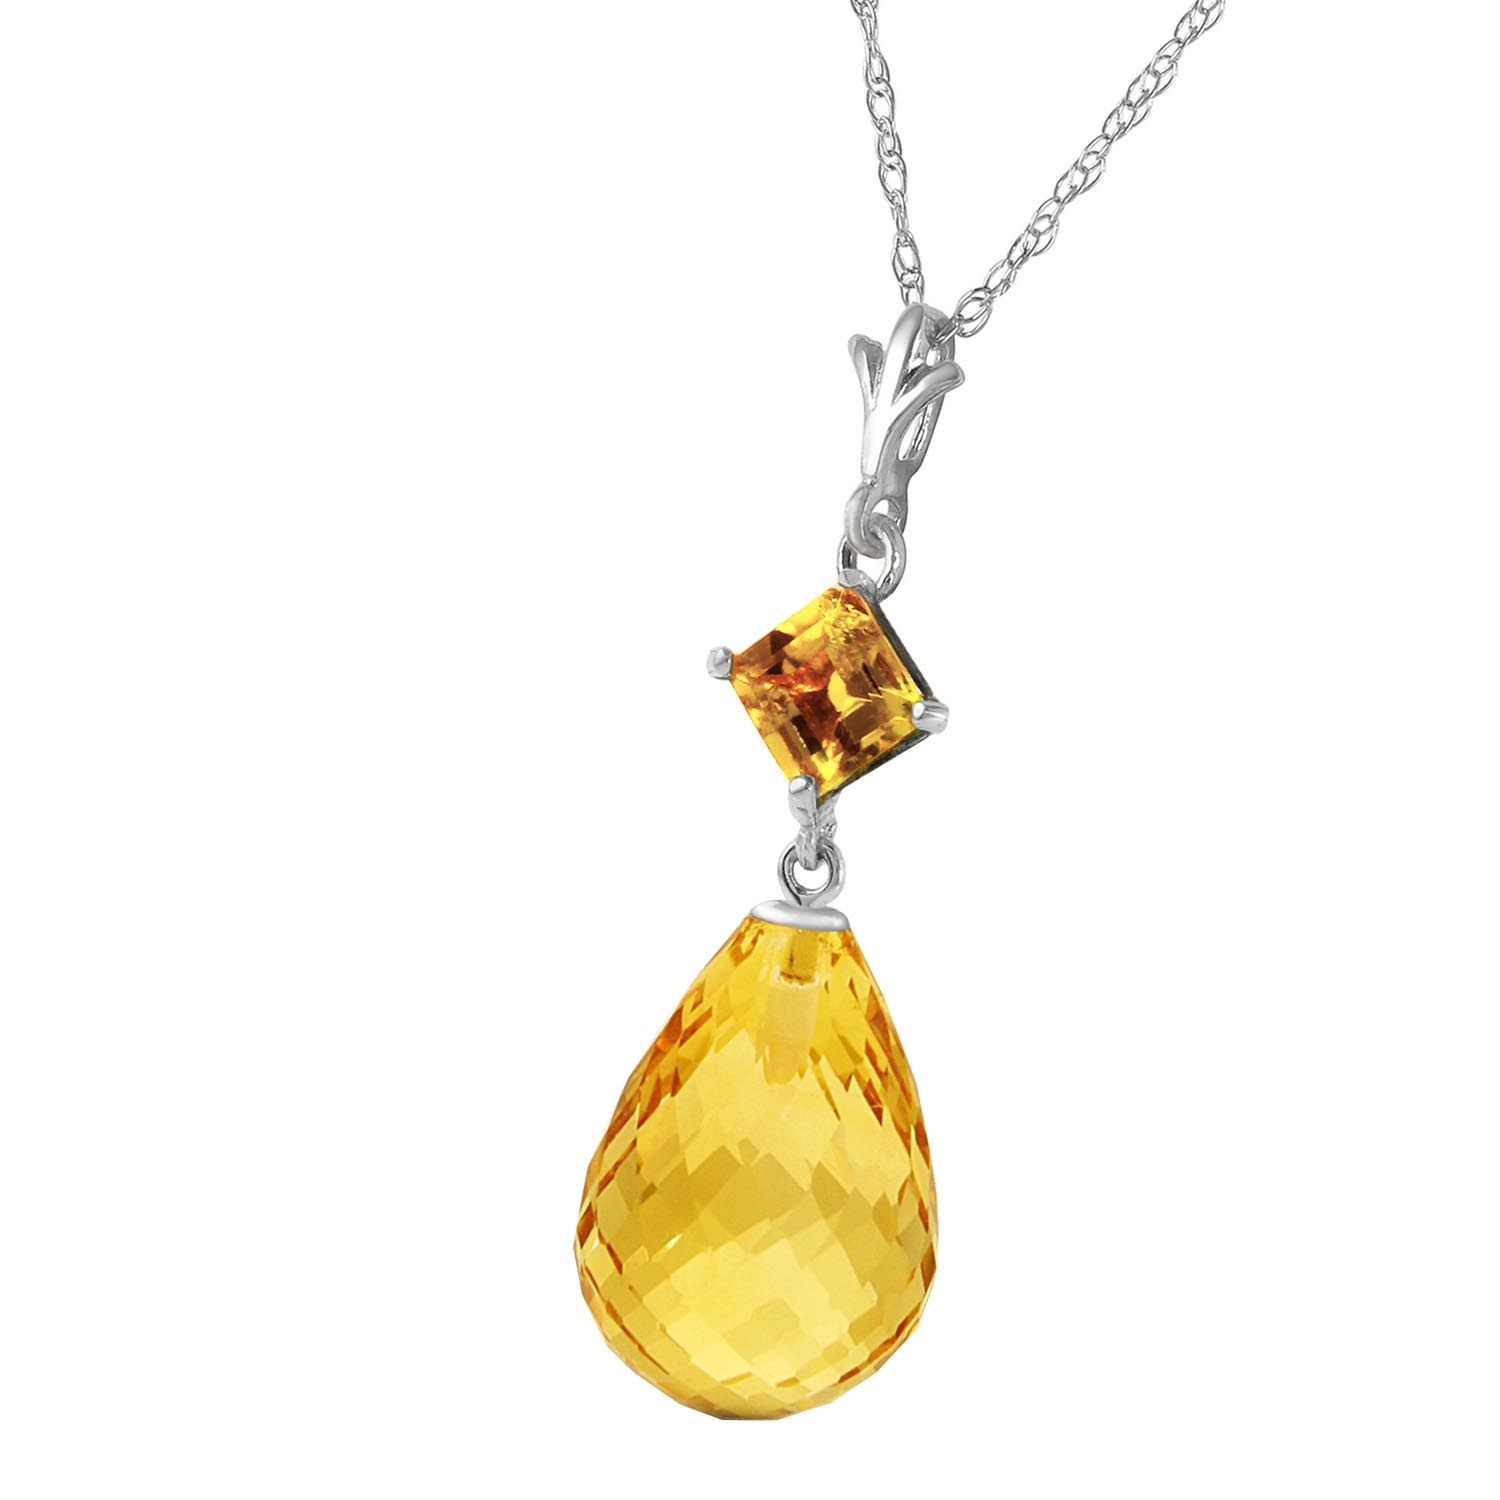 Citrine Briolette Pendant Necklace 5.5ctw in 9ct White Gold